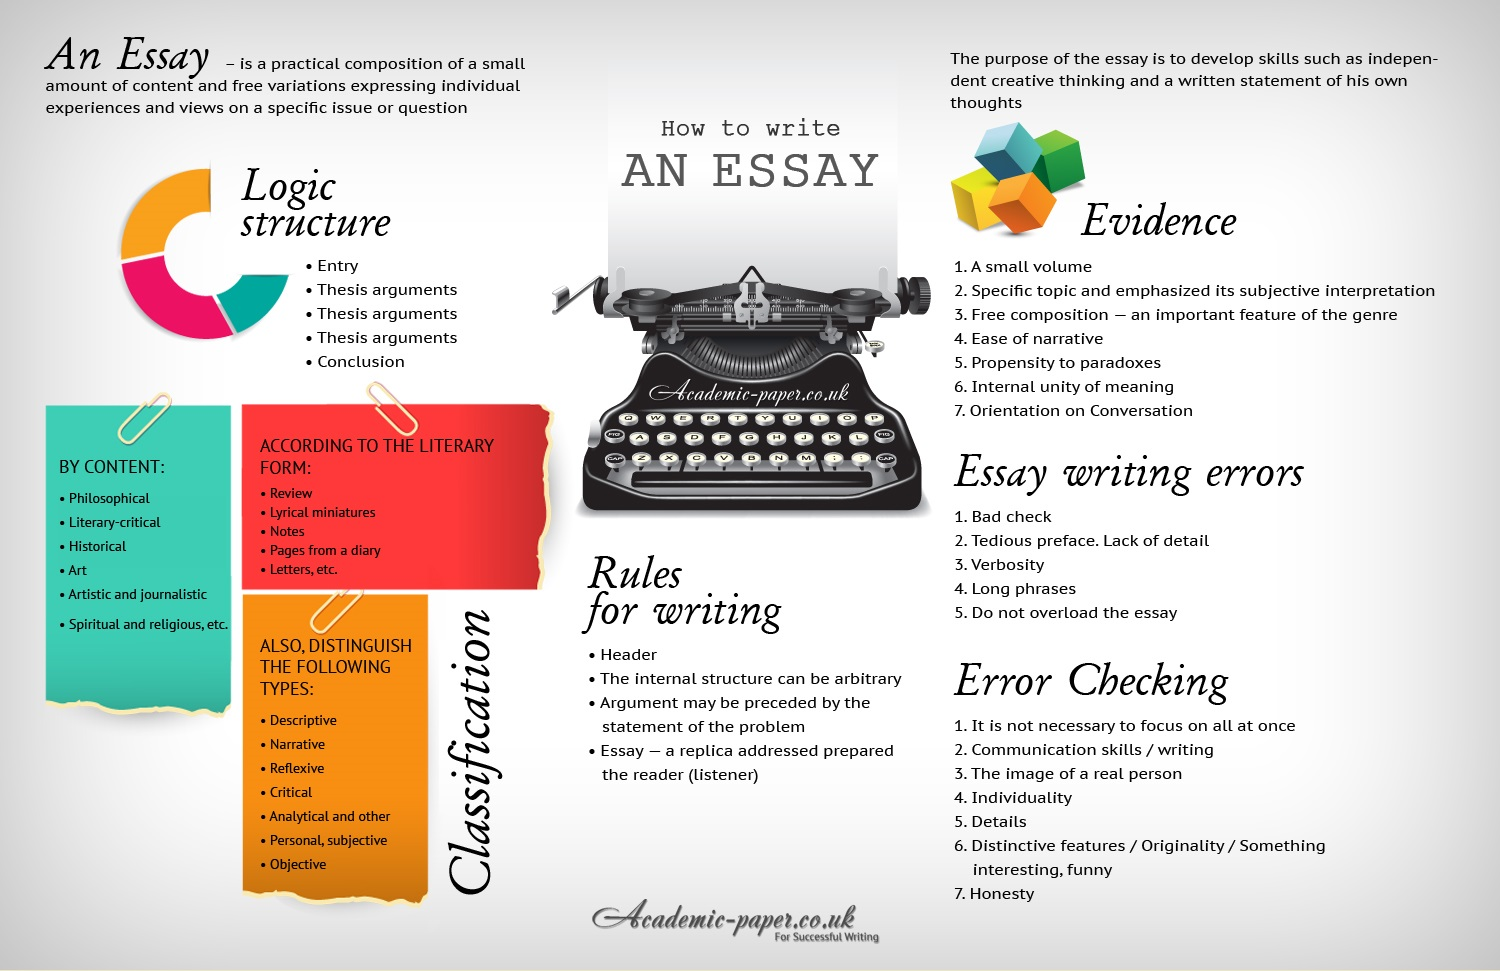 Essay-Writing